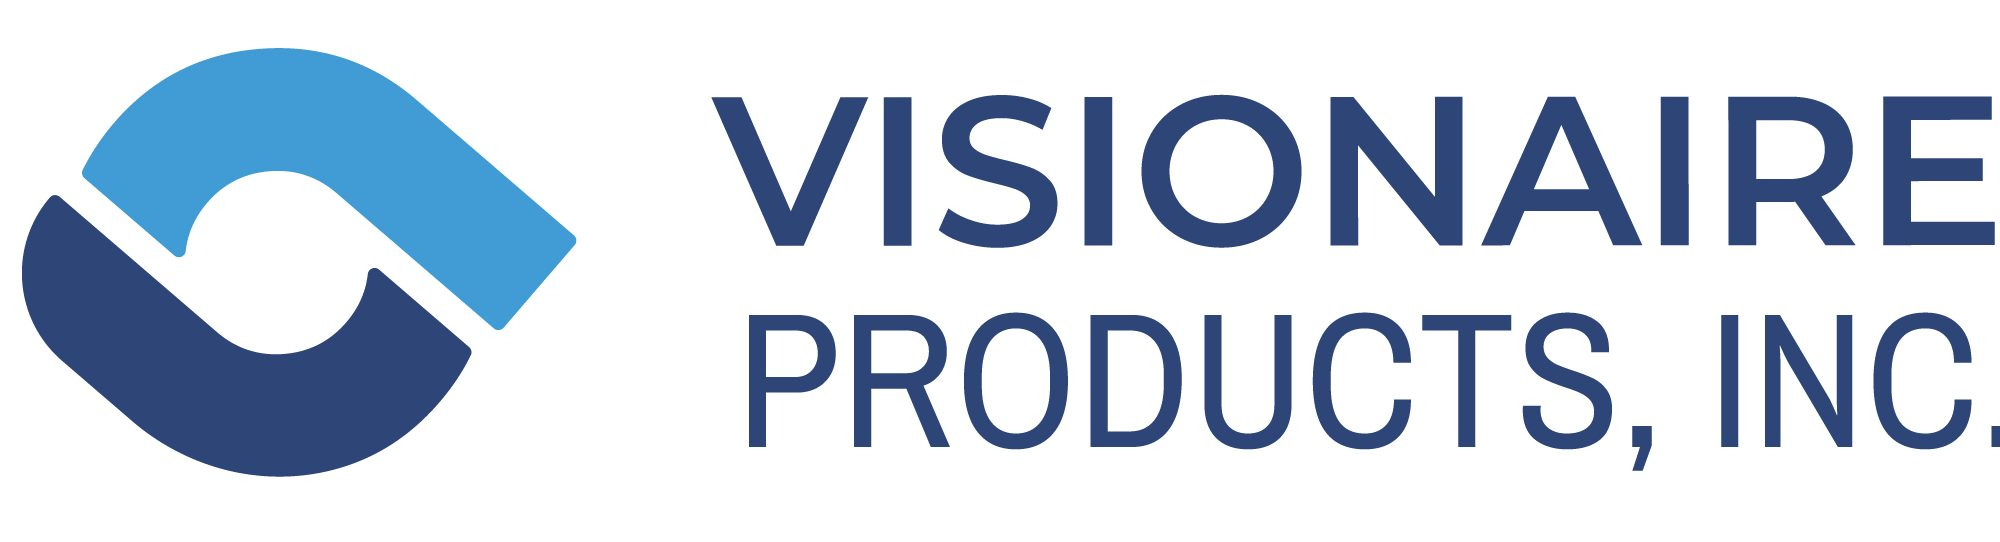 Visionaire Products_Full Color Logo